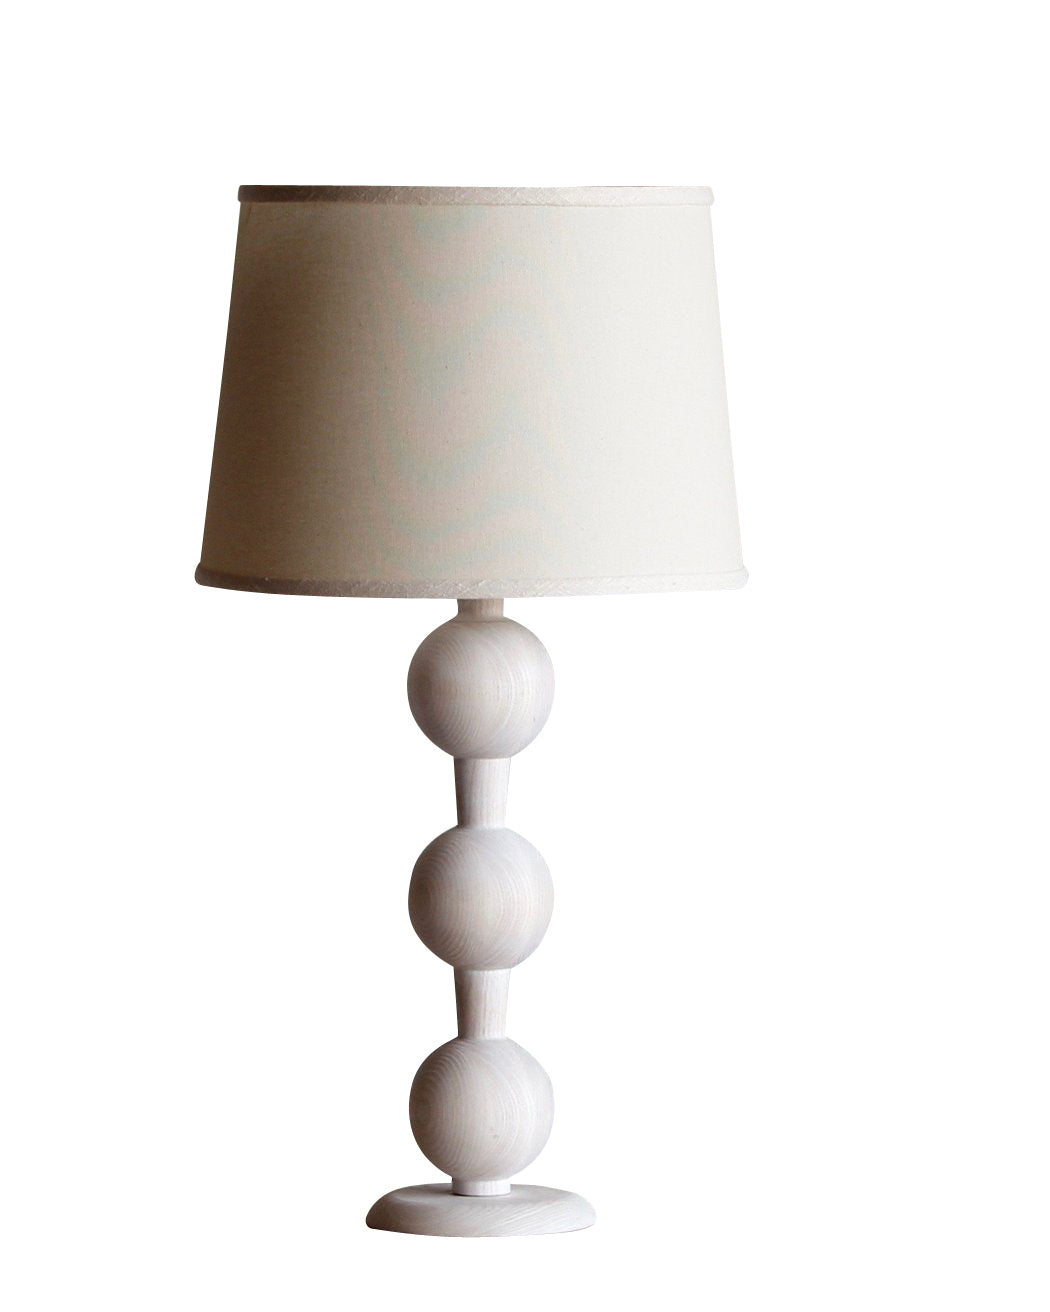 Hugo Table Lamp in Whitewash